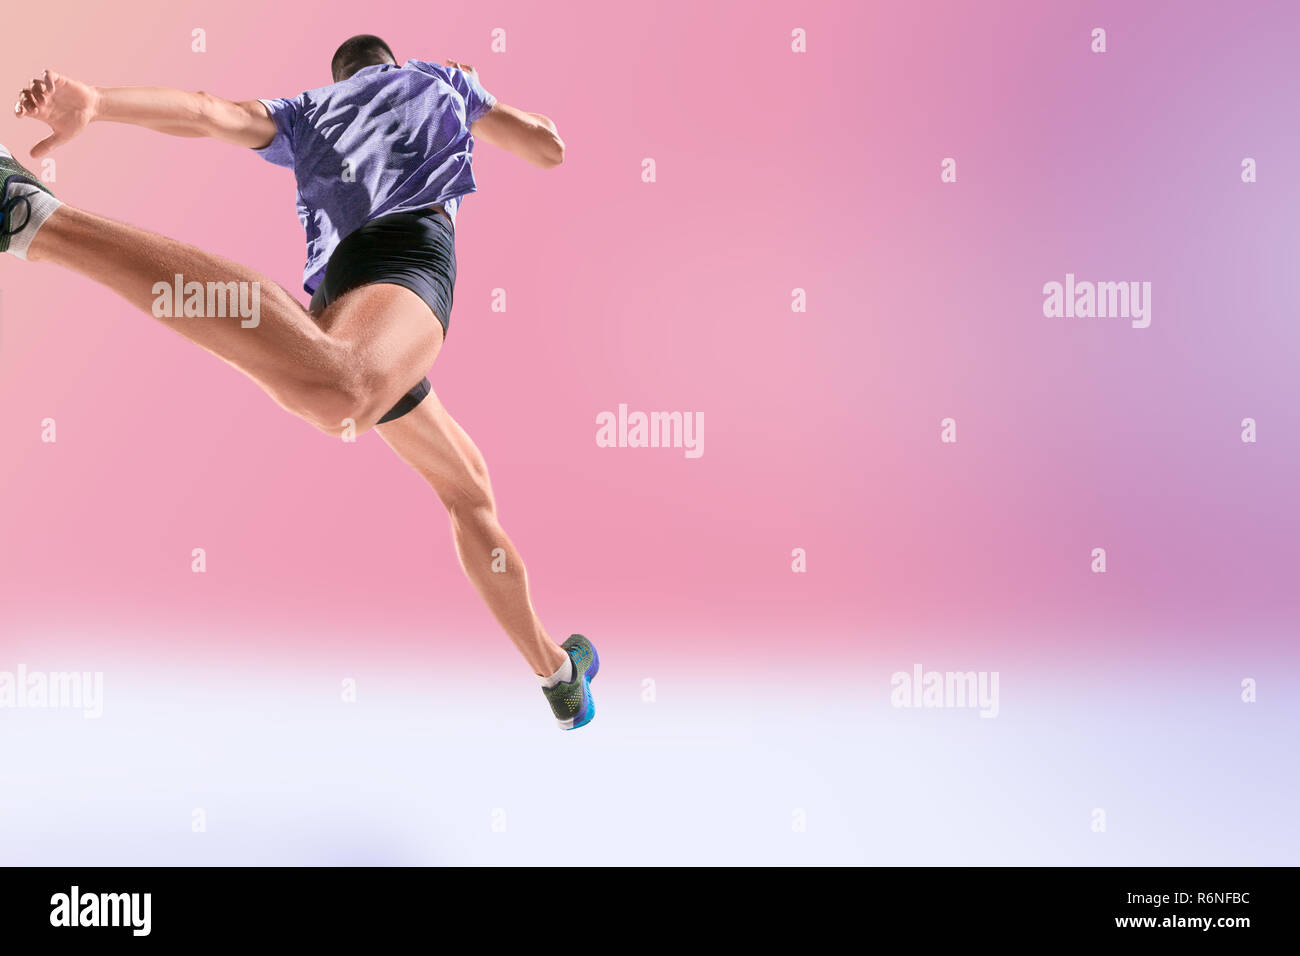 The studio shot of high jump athlete is in action - Stock Image